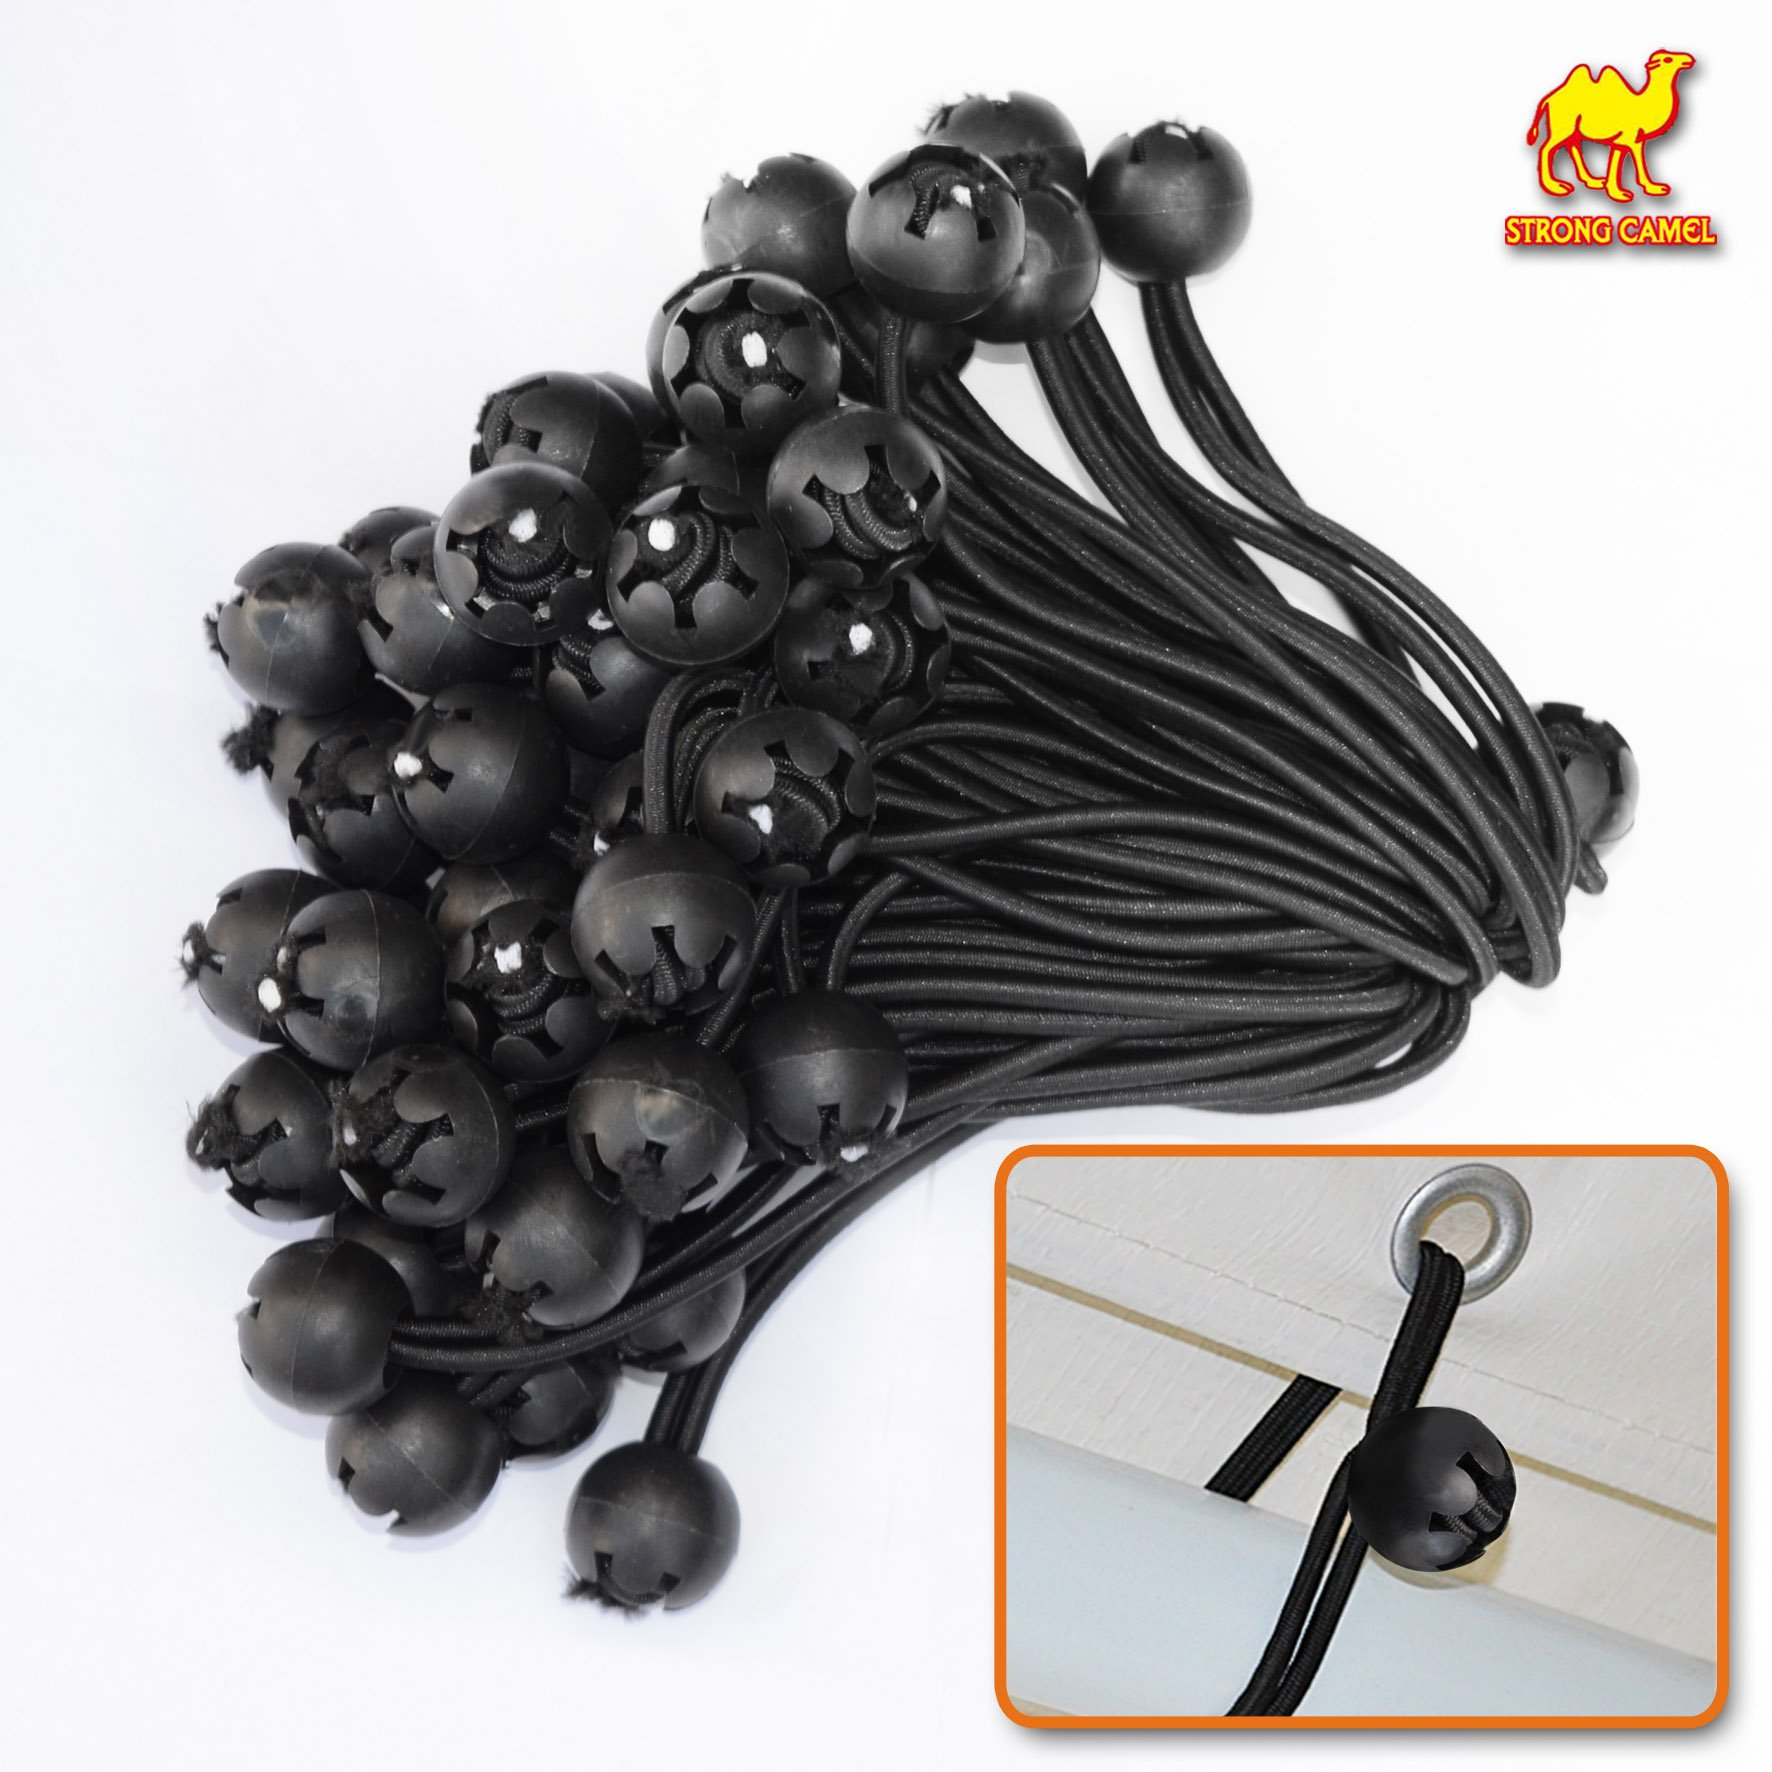 STRONG CAMEL Ball Bungees Cord Tarp Party Tent Tie Downs Bungee Canopy Gazebo Straps -6''-BLACK(50PCS)